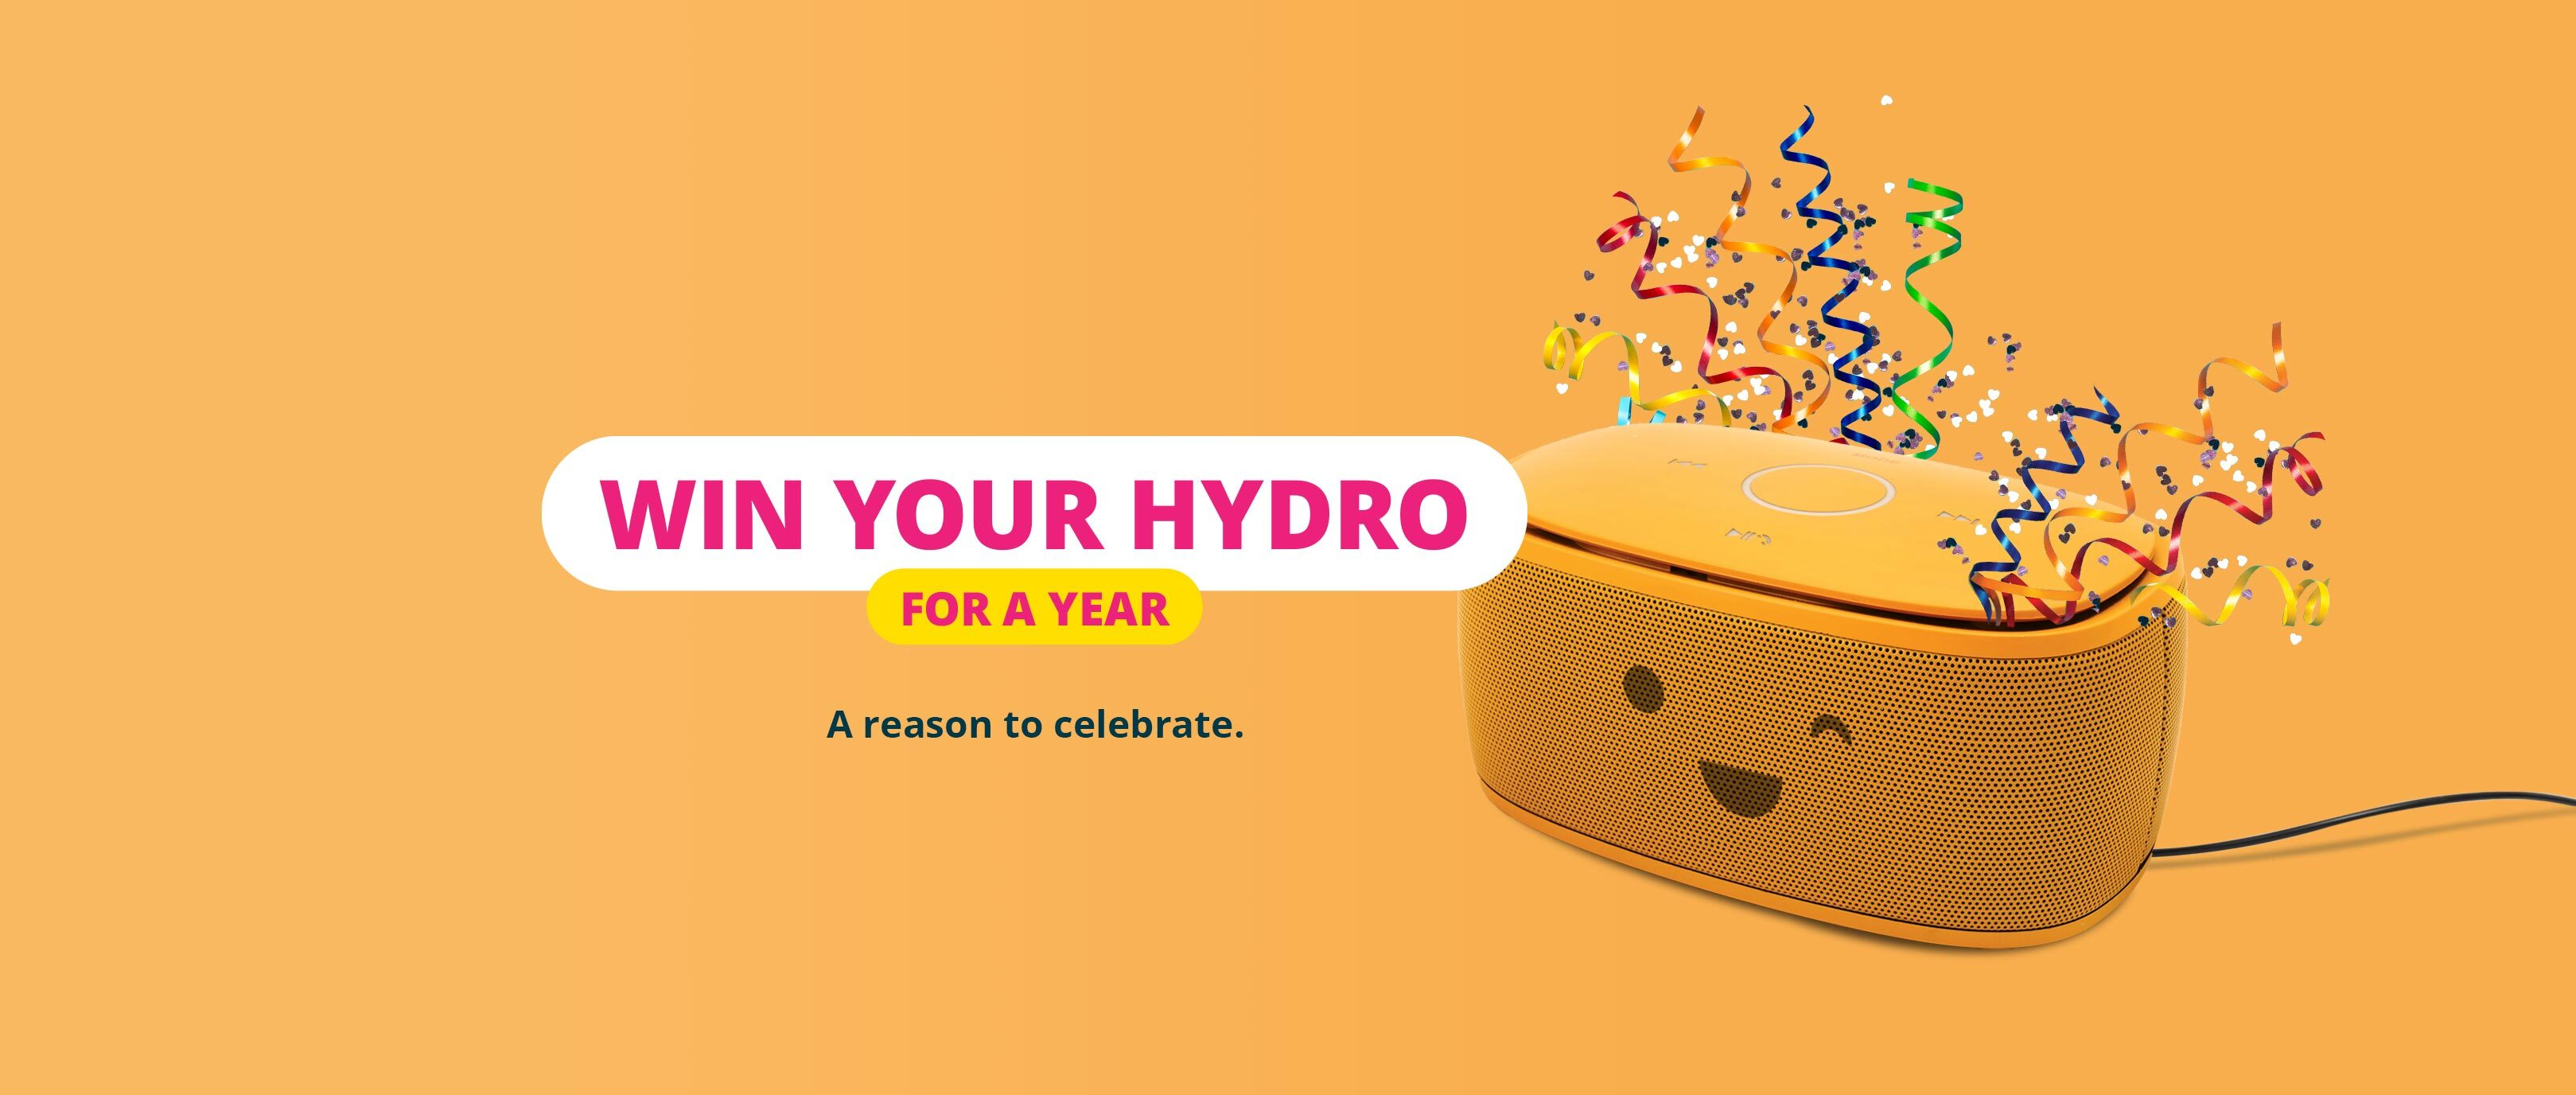 Win your Hydro for a year. A new reason to celebrate.